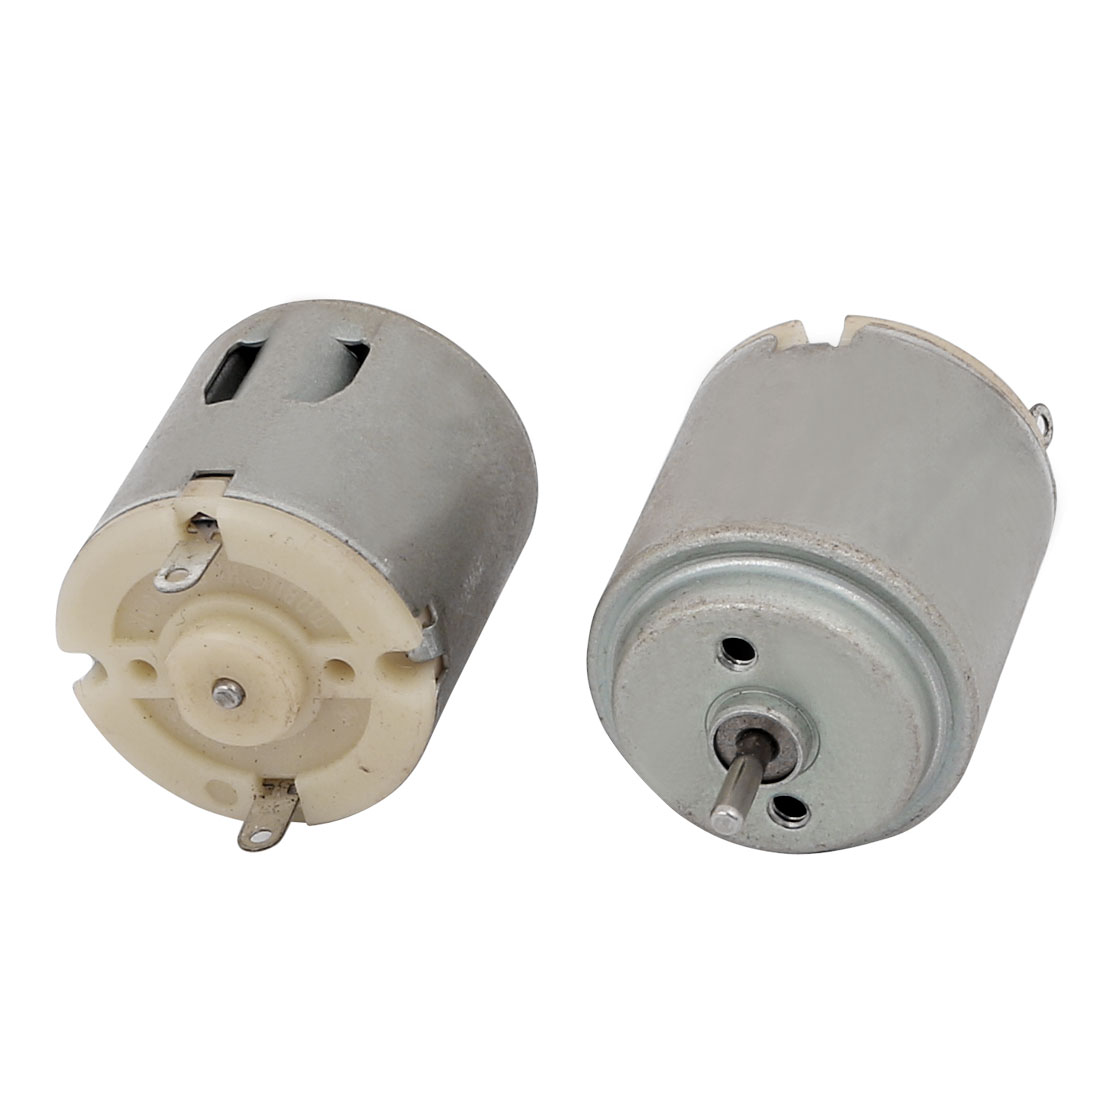 2pcs DC3-6V 4000RPM Mini Electric Motor 2Terminal Connector for Electrical Tools